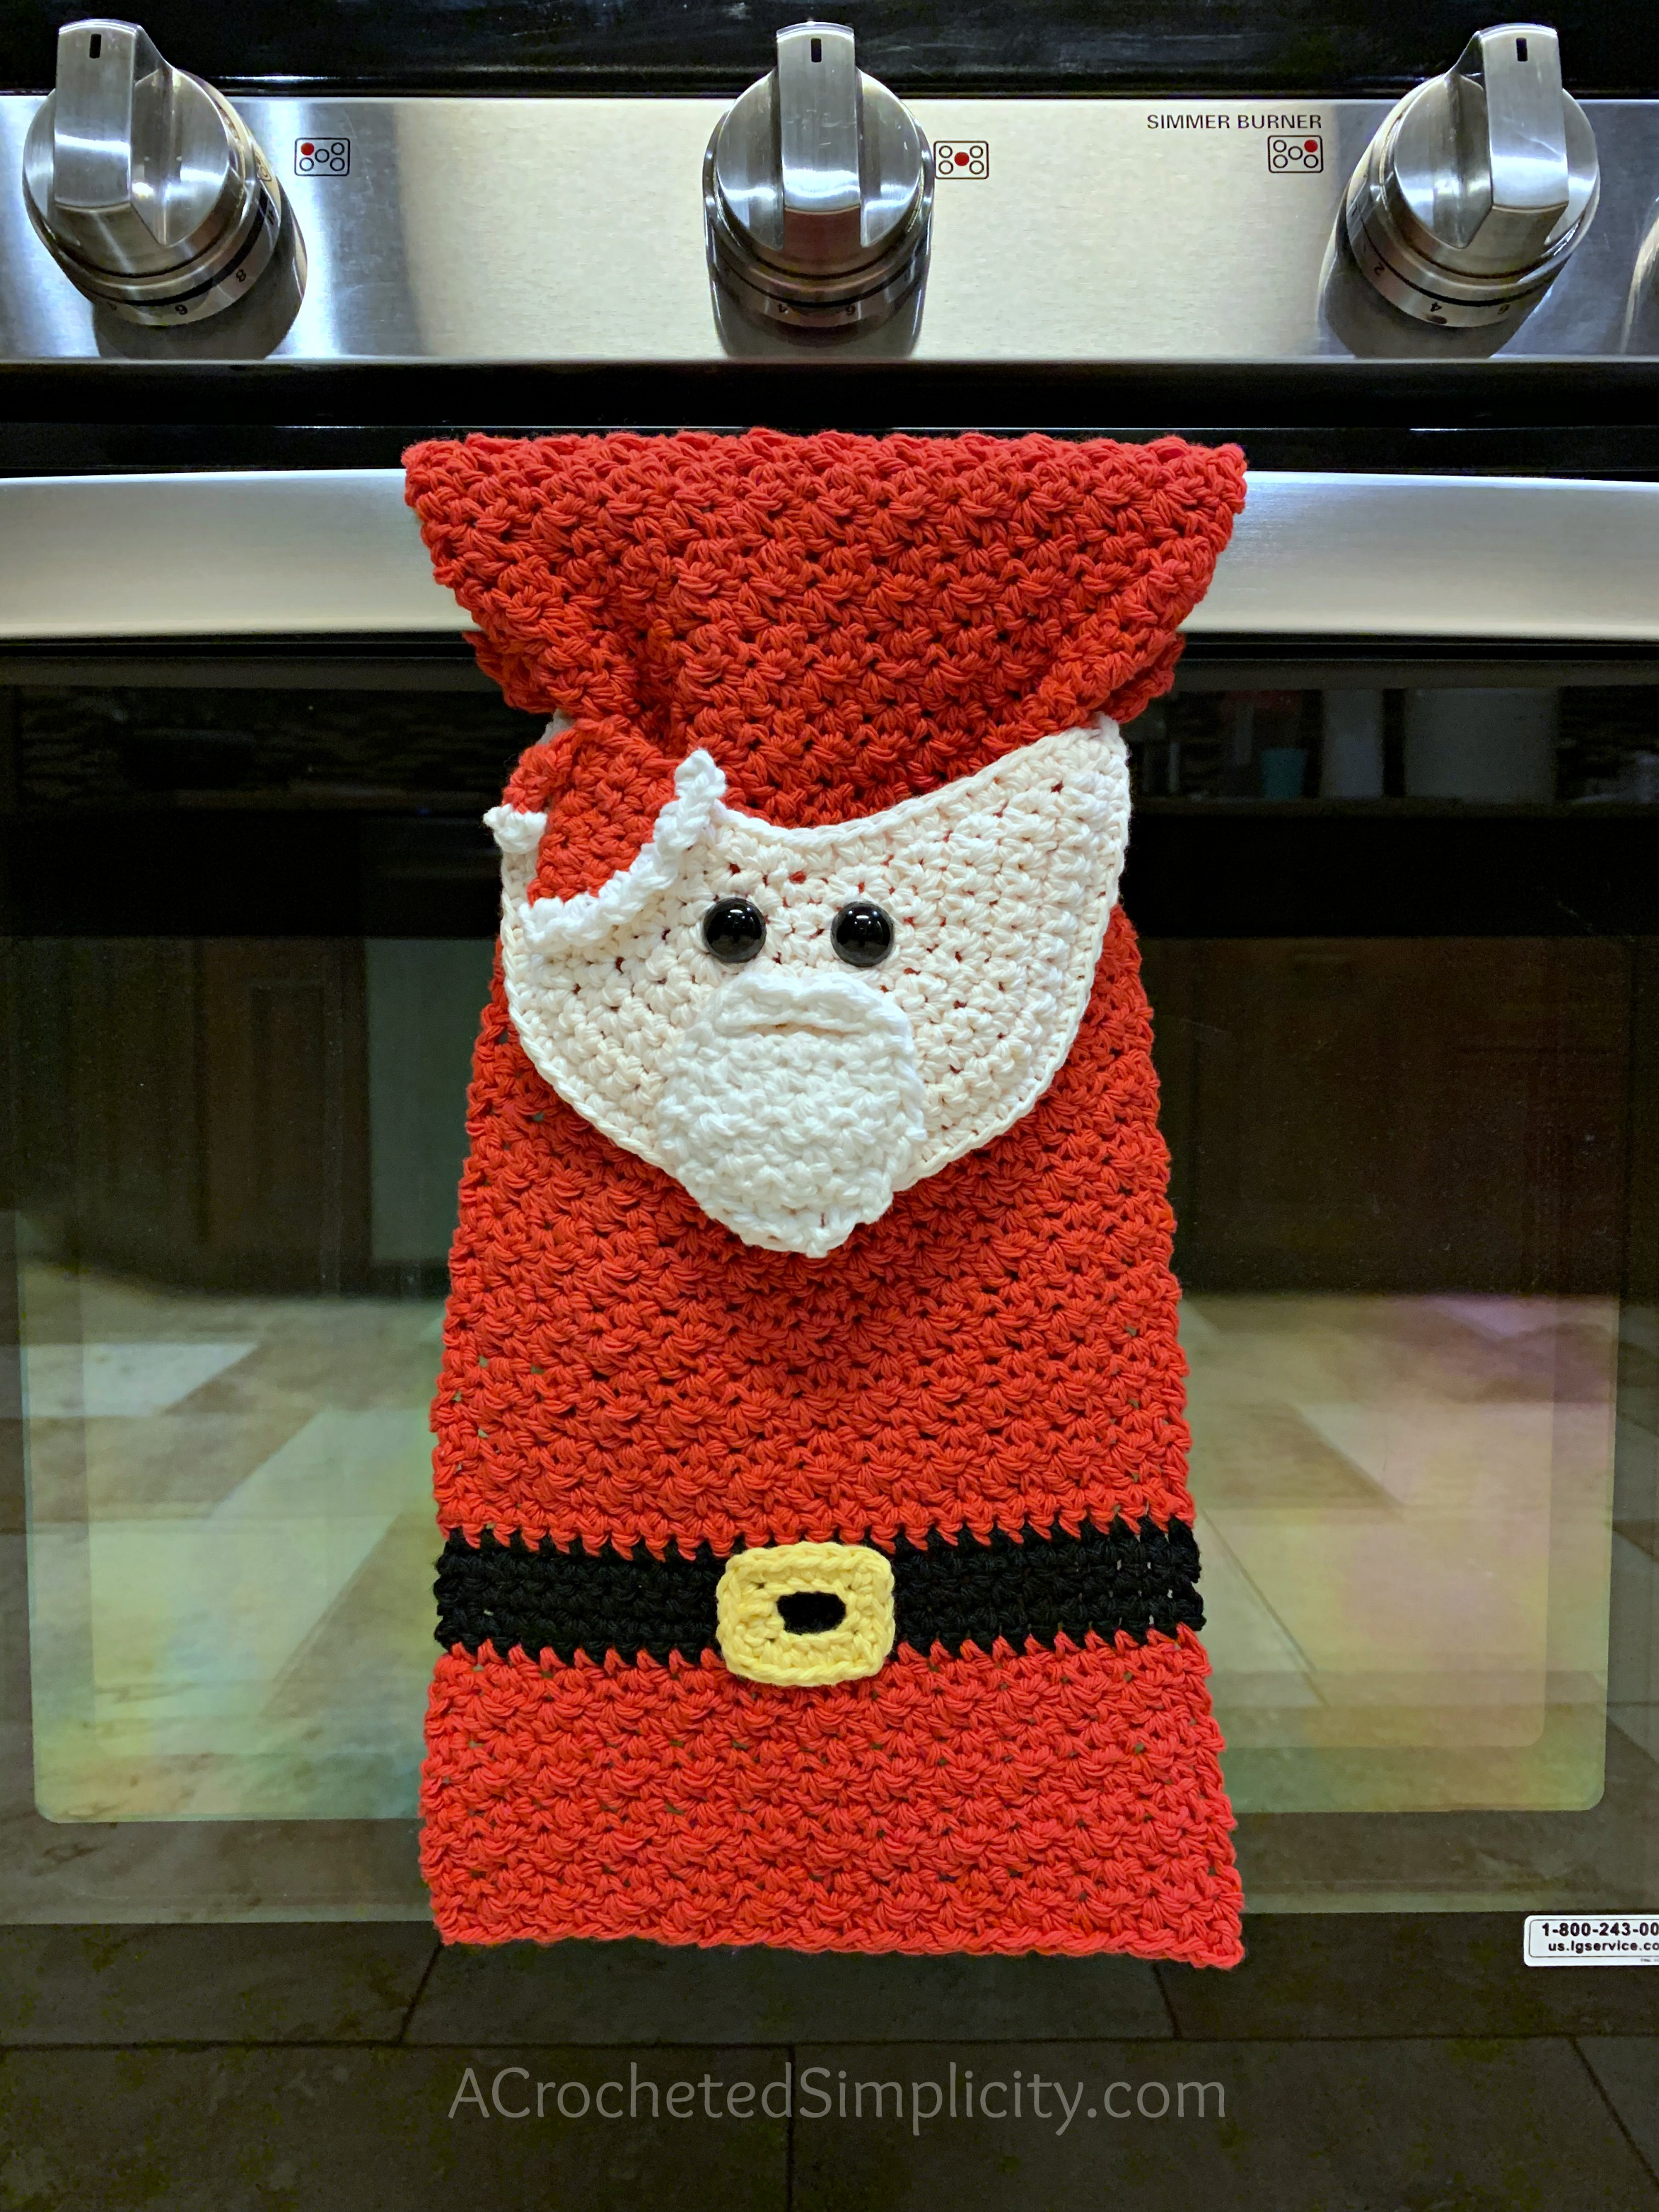 Free Crochet Towel Pattern - Santa Claus Kitchen Towel by A Crocheted Simplicity #santaclauscrochet #crochetsantaclaus #santaclaustowel #freecrochetpattern #crochettowelpattern #santatowel #handmadetowel